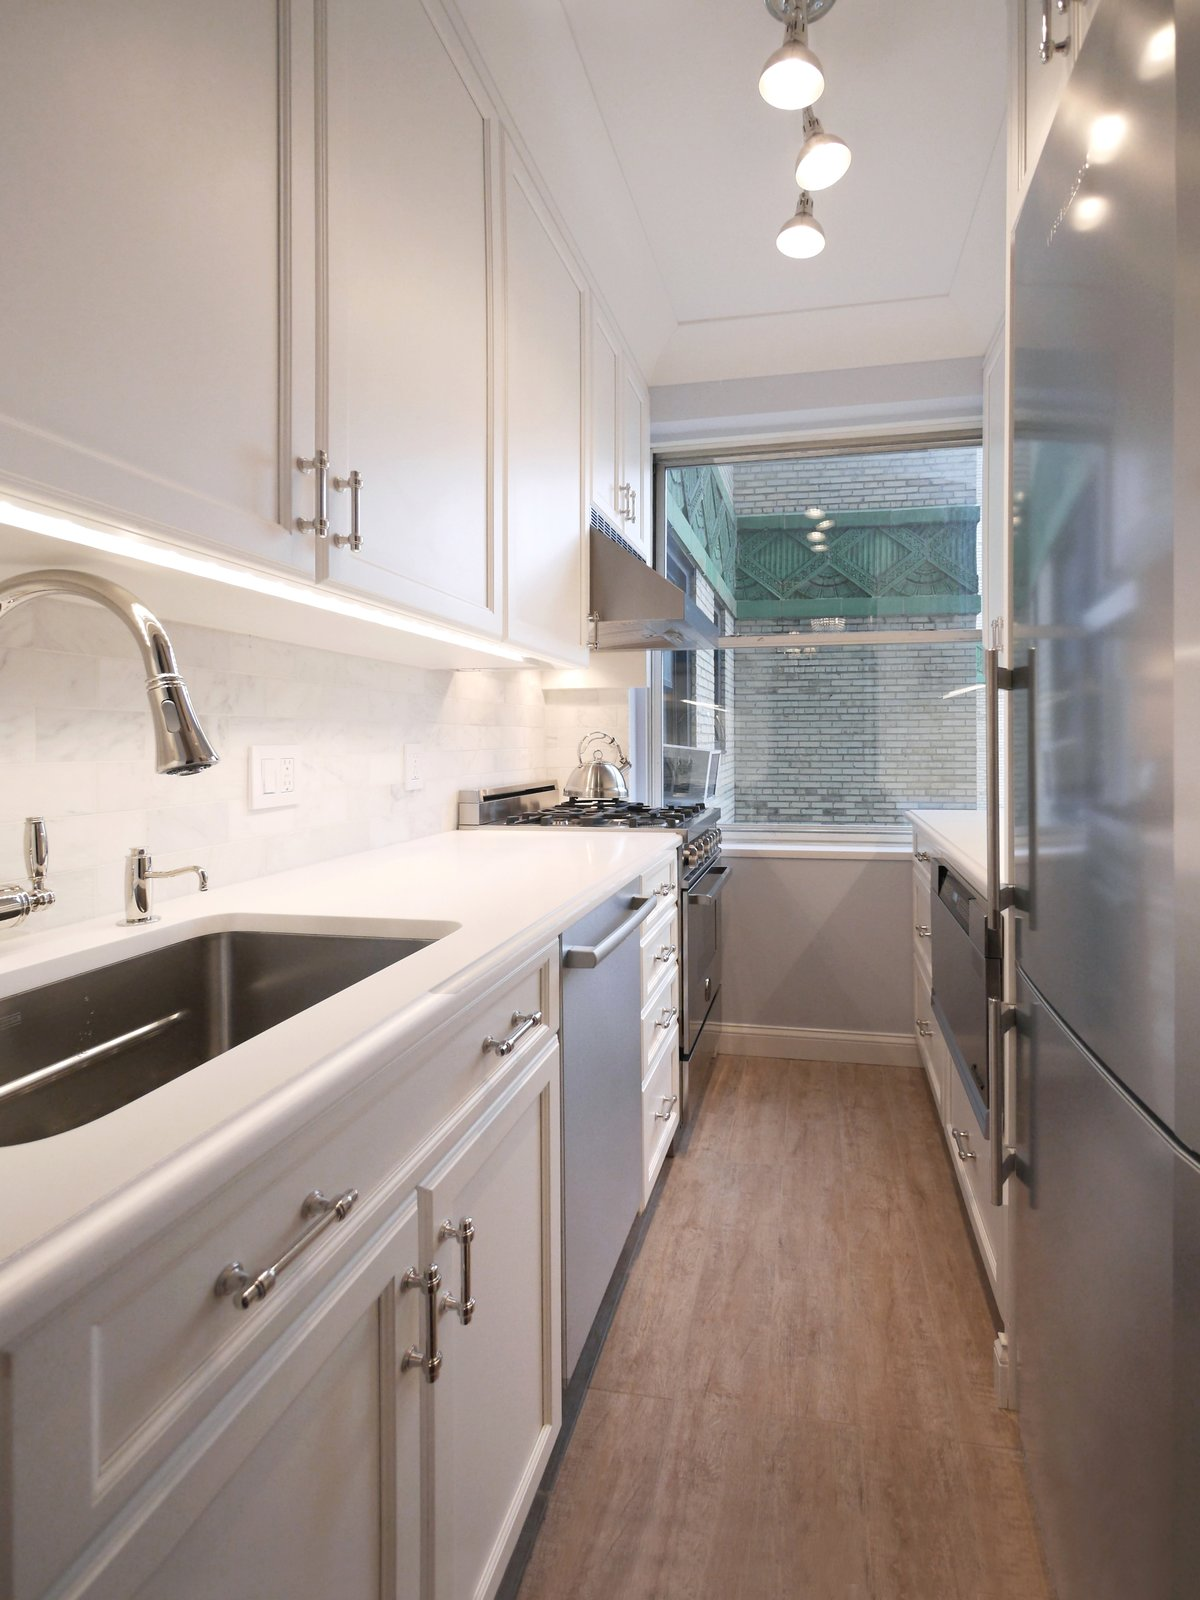 Galley Kitchens Collection Of 7 Photos By Paula Mcdonald Design Build Interiors Dwell